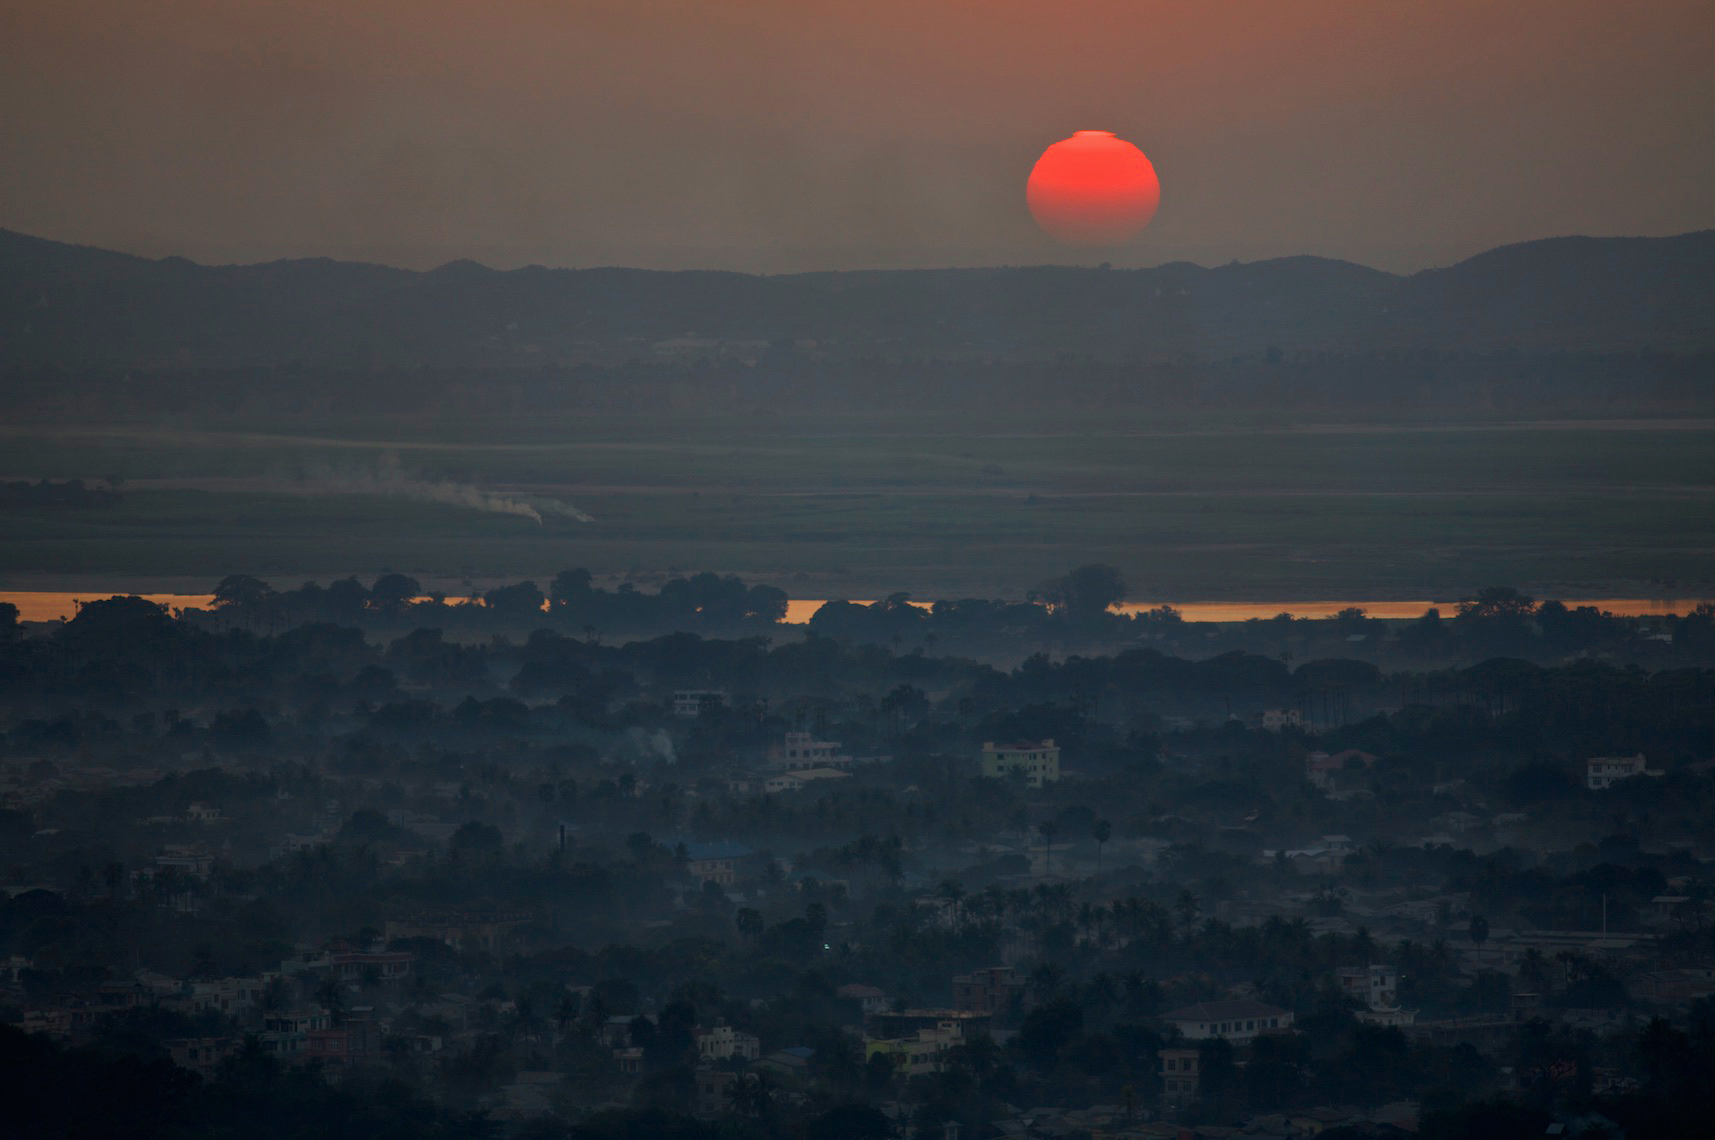 Sunset Over the Irawaddy River, Mandalay, Burma